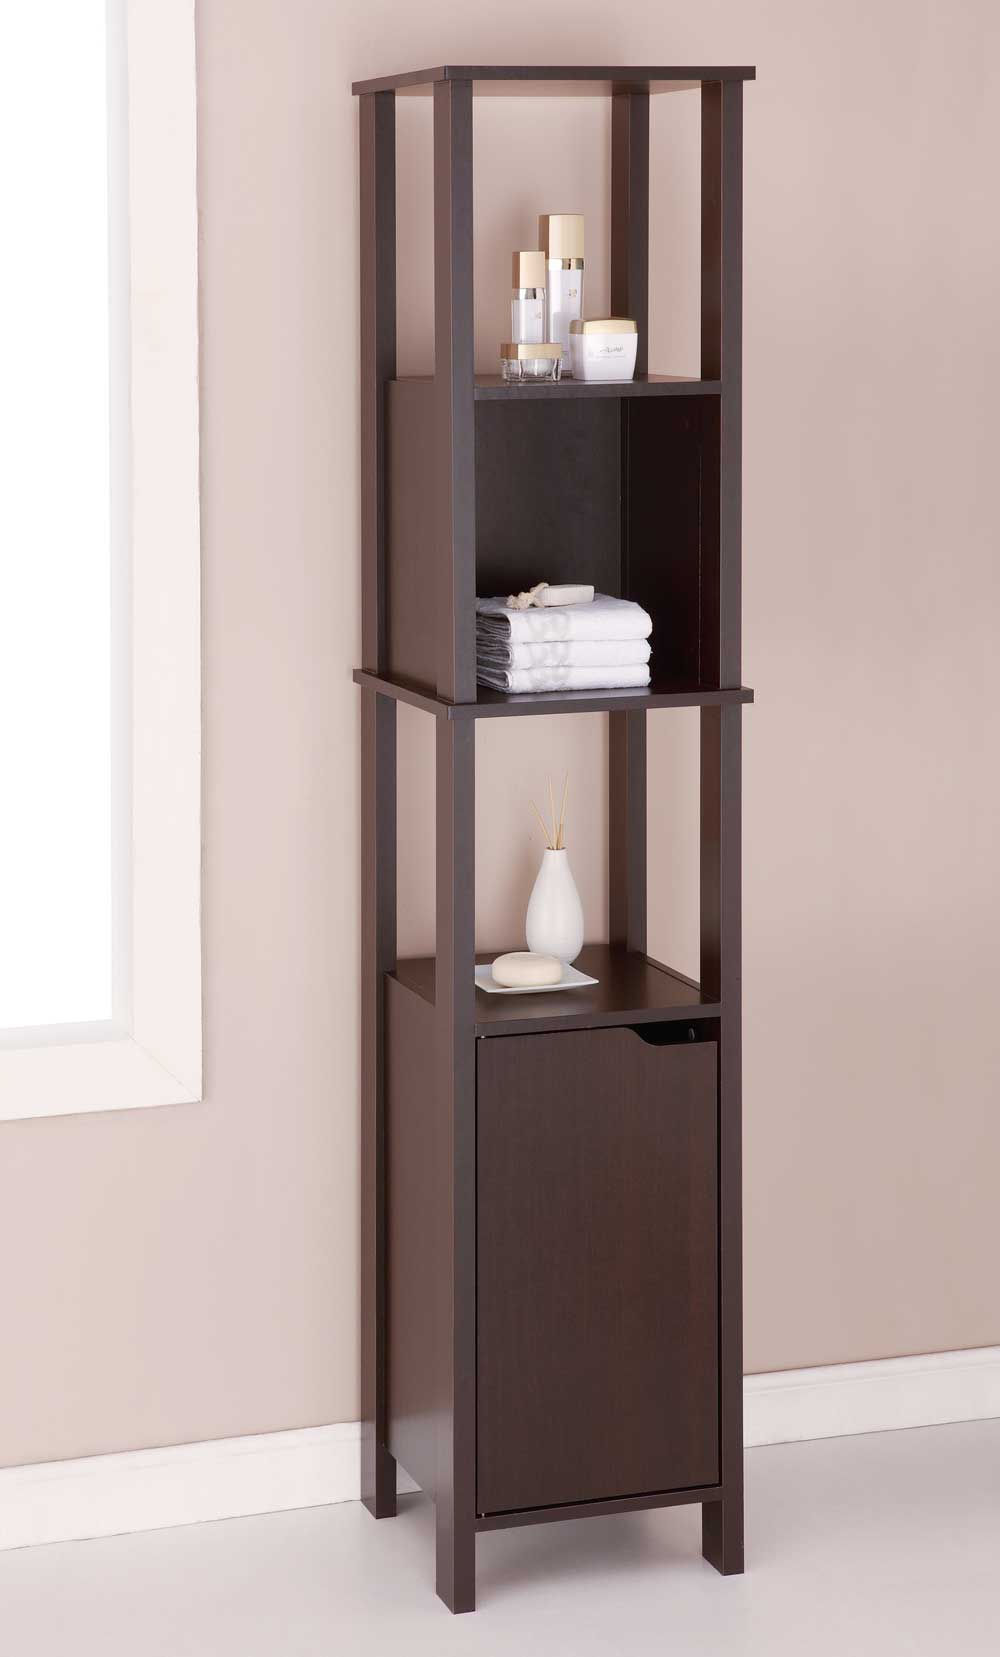 Wood cabinet high in bathroom shelves for Bathroom cabinet wood